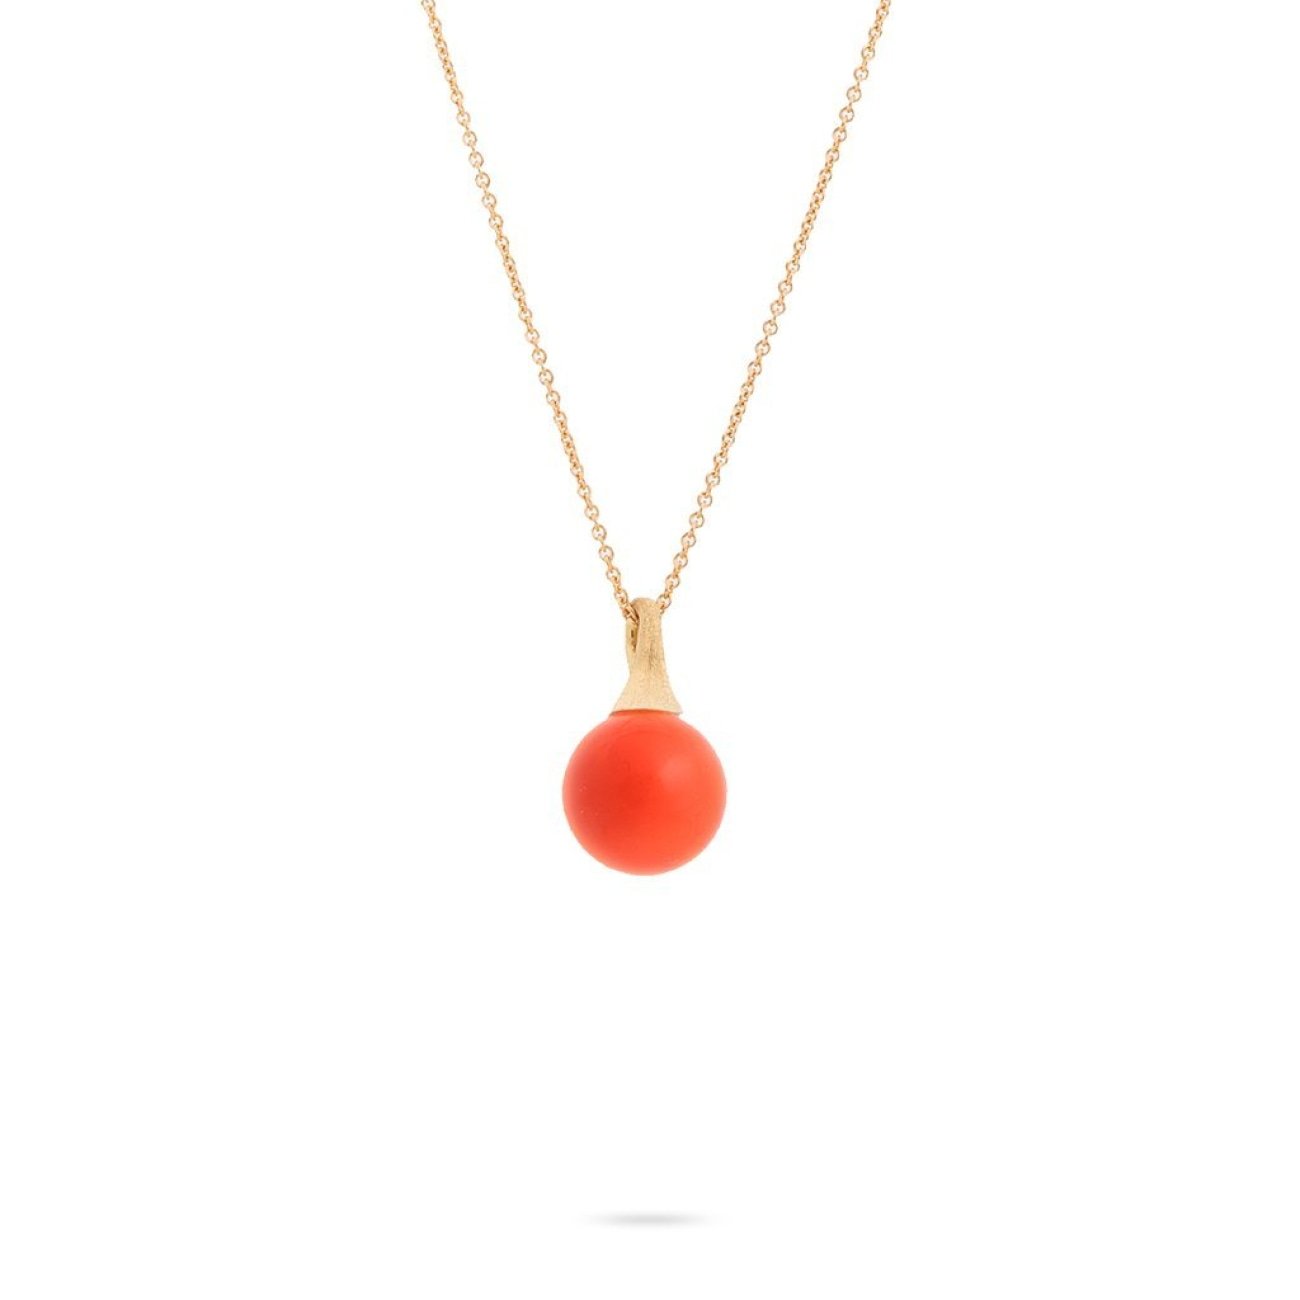 Marco Bicego Jewelry - Africa Boules 18k Yellow Gold and Coral Pendant | Manfredi Jewels